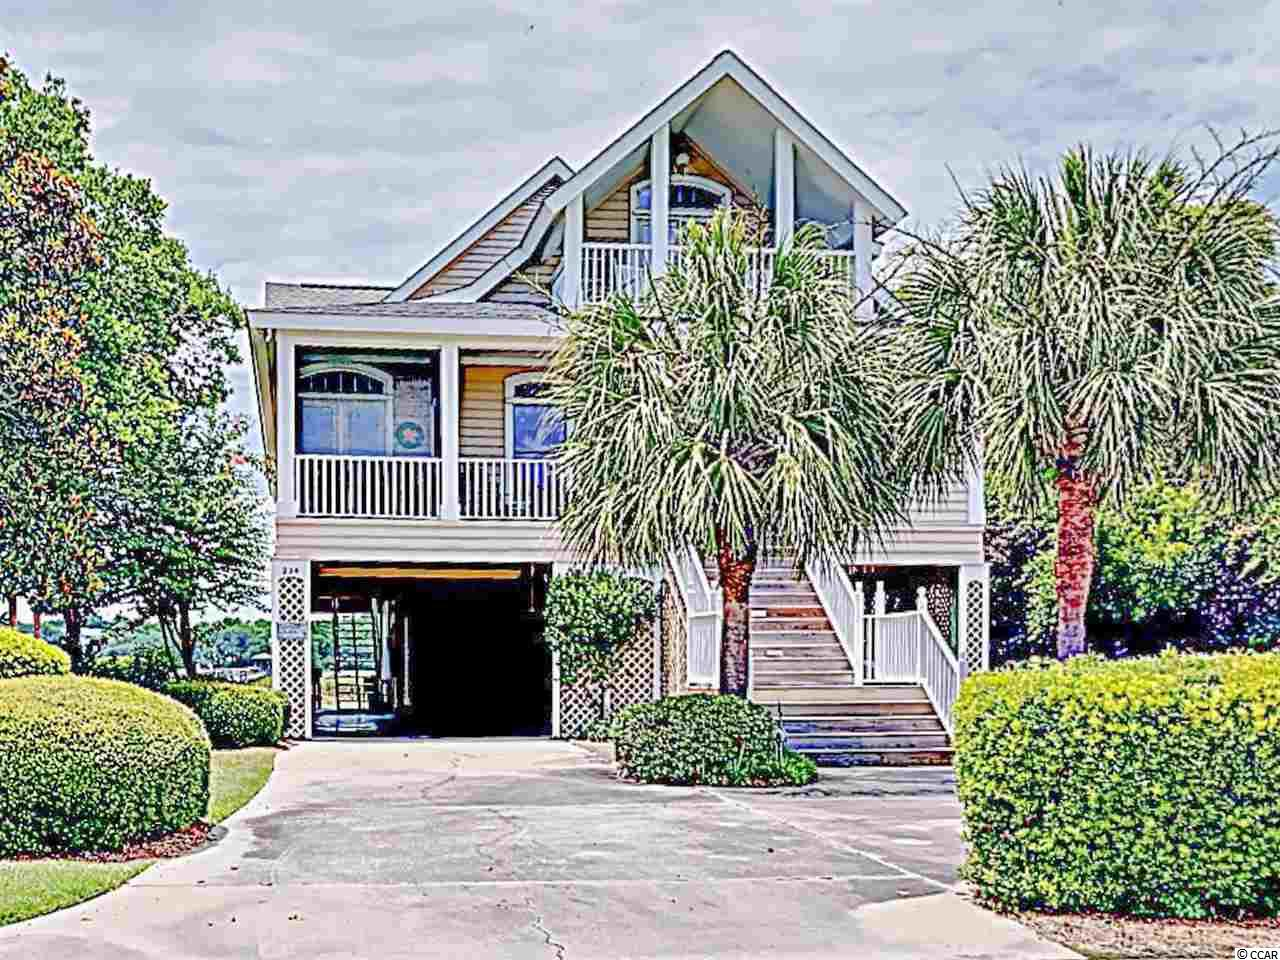 This gorgeous home is located on the creek in Inlet Point South.  It has fabulous views of creek, salt marsh and a glimpse of the ocean from the top floor porch.  The open floor plan allows great views from living spaces.  There is also a loft that is open to the large living room below. It is beautifully furnished, and the kitchen was renovated just a few years ago.  Currently set up as a 4 bedroom home, it has a 5th bedroom that is currently being used as a family room/ office.  Enjoy all of the amenities including a large 65' UHD flat screen in the living room, with surround sound, multiple porches, fireplace, bar, enclosed outside shower, fish cleaning sink, covered dock and floating dock on the creek that is only shared with one neighbor.    The Inlet Point South Community includes a private boat landing in Pawleys Creek, swimming pool, private access to Litchfield Beach, and guard gate at the community entrance.   The home has been used and loved by the owners for many years and shared with a great business of loyal repeat renters in the summer.  Rental income is available by request though The Dieter Company.